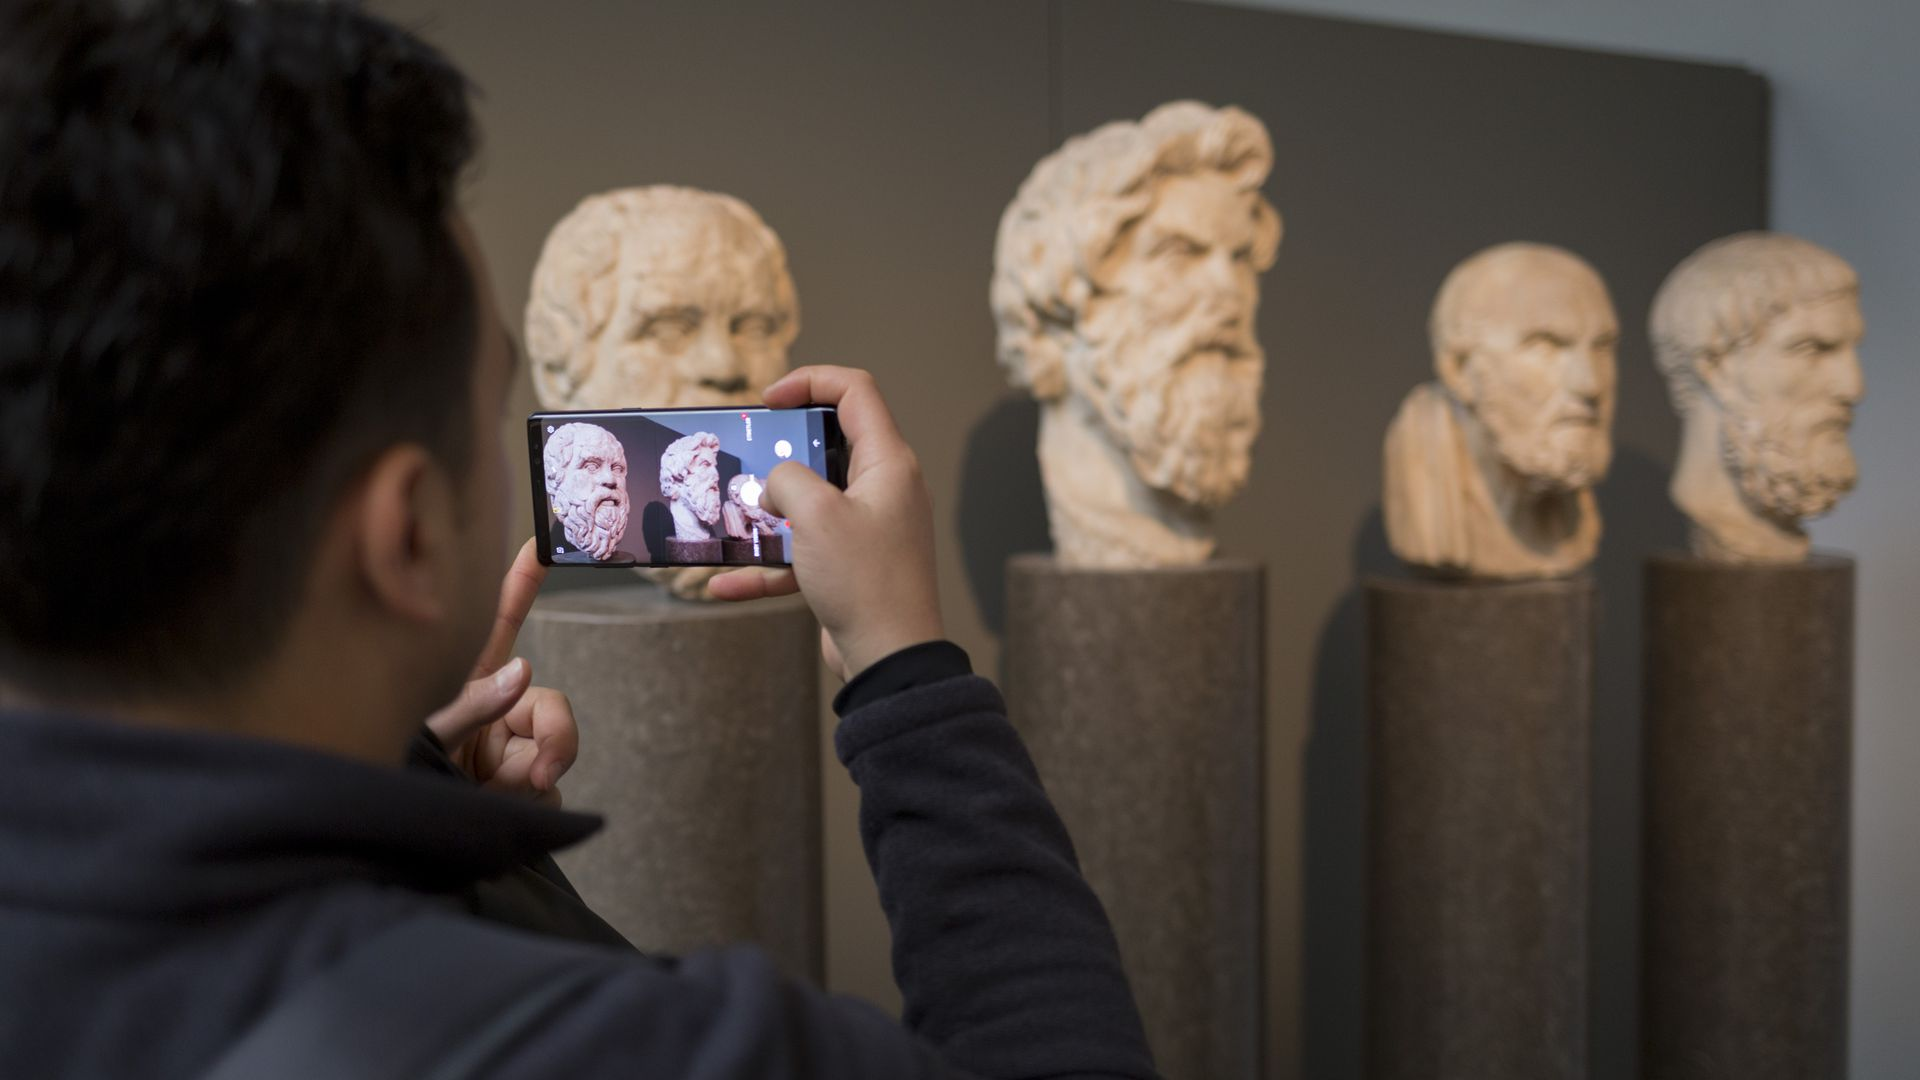 A visitor takes a picture of the heads of ancient Greek philosophers